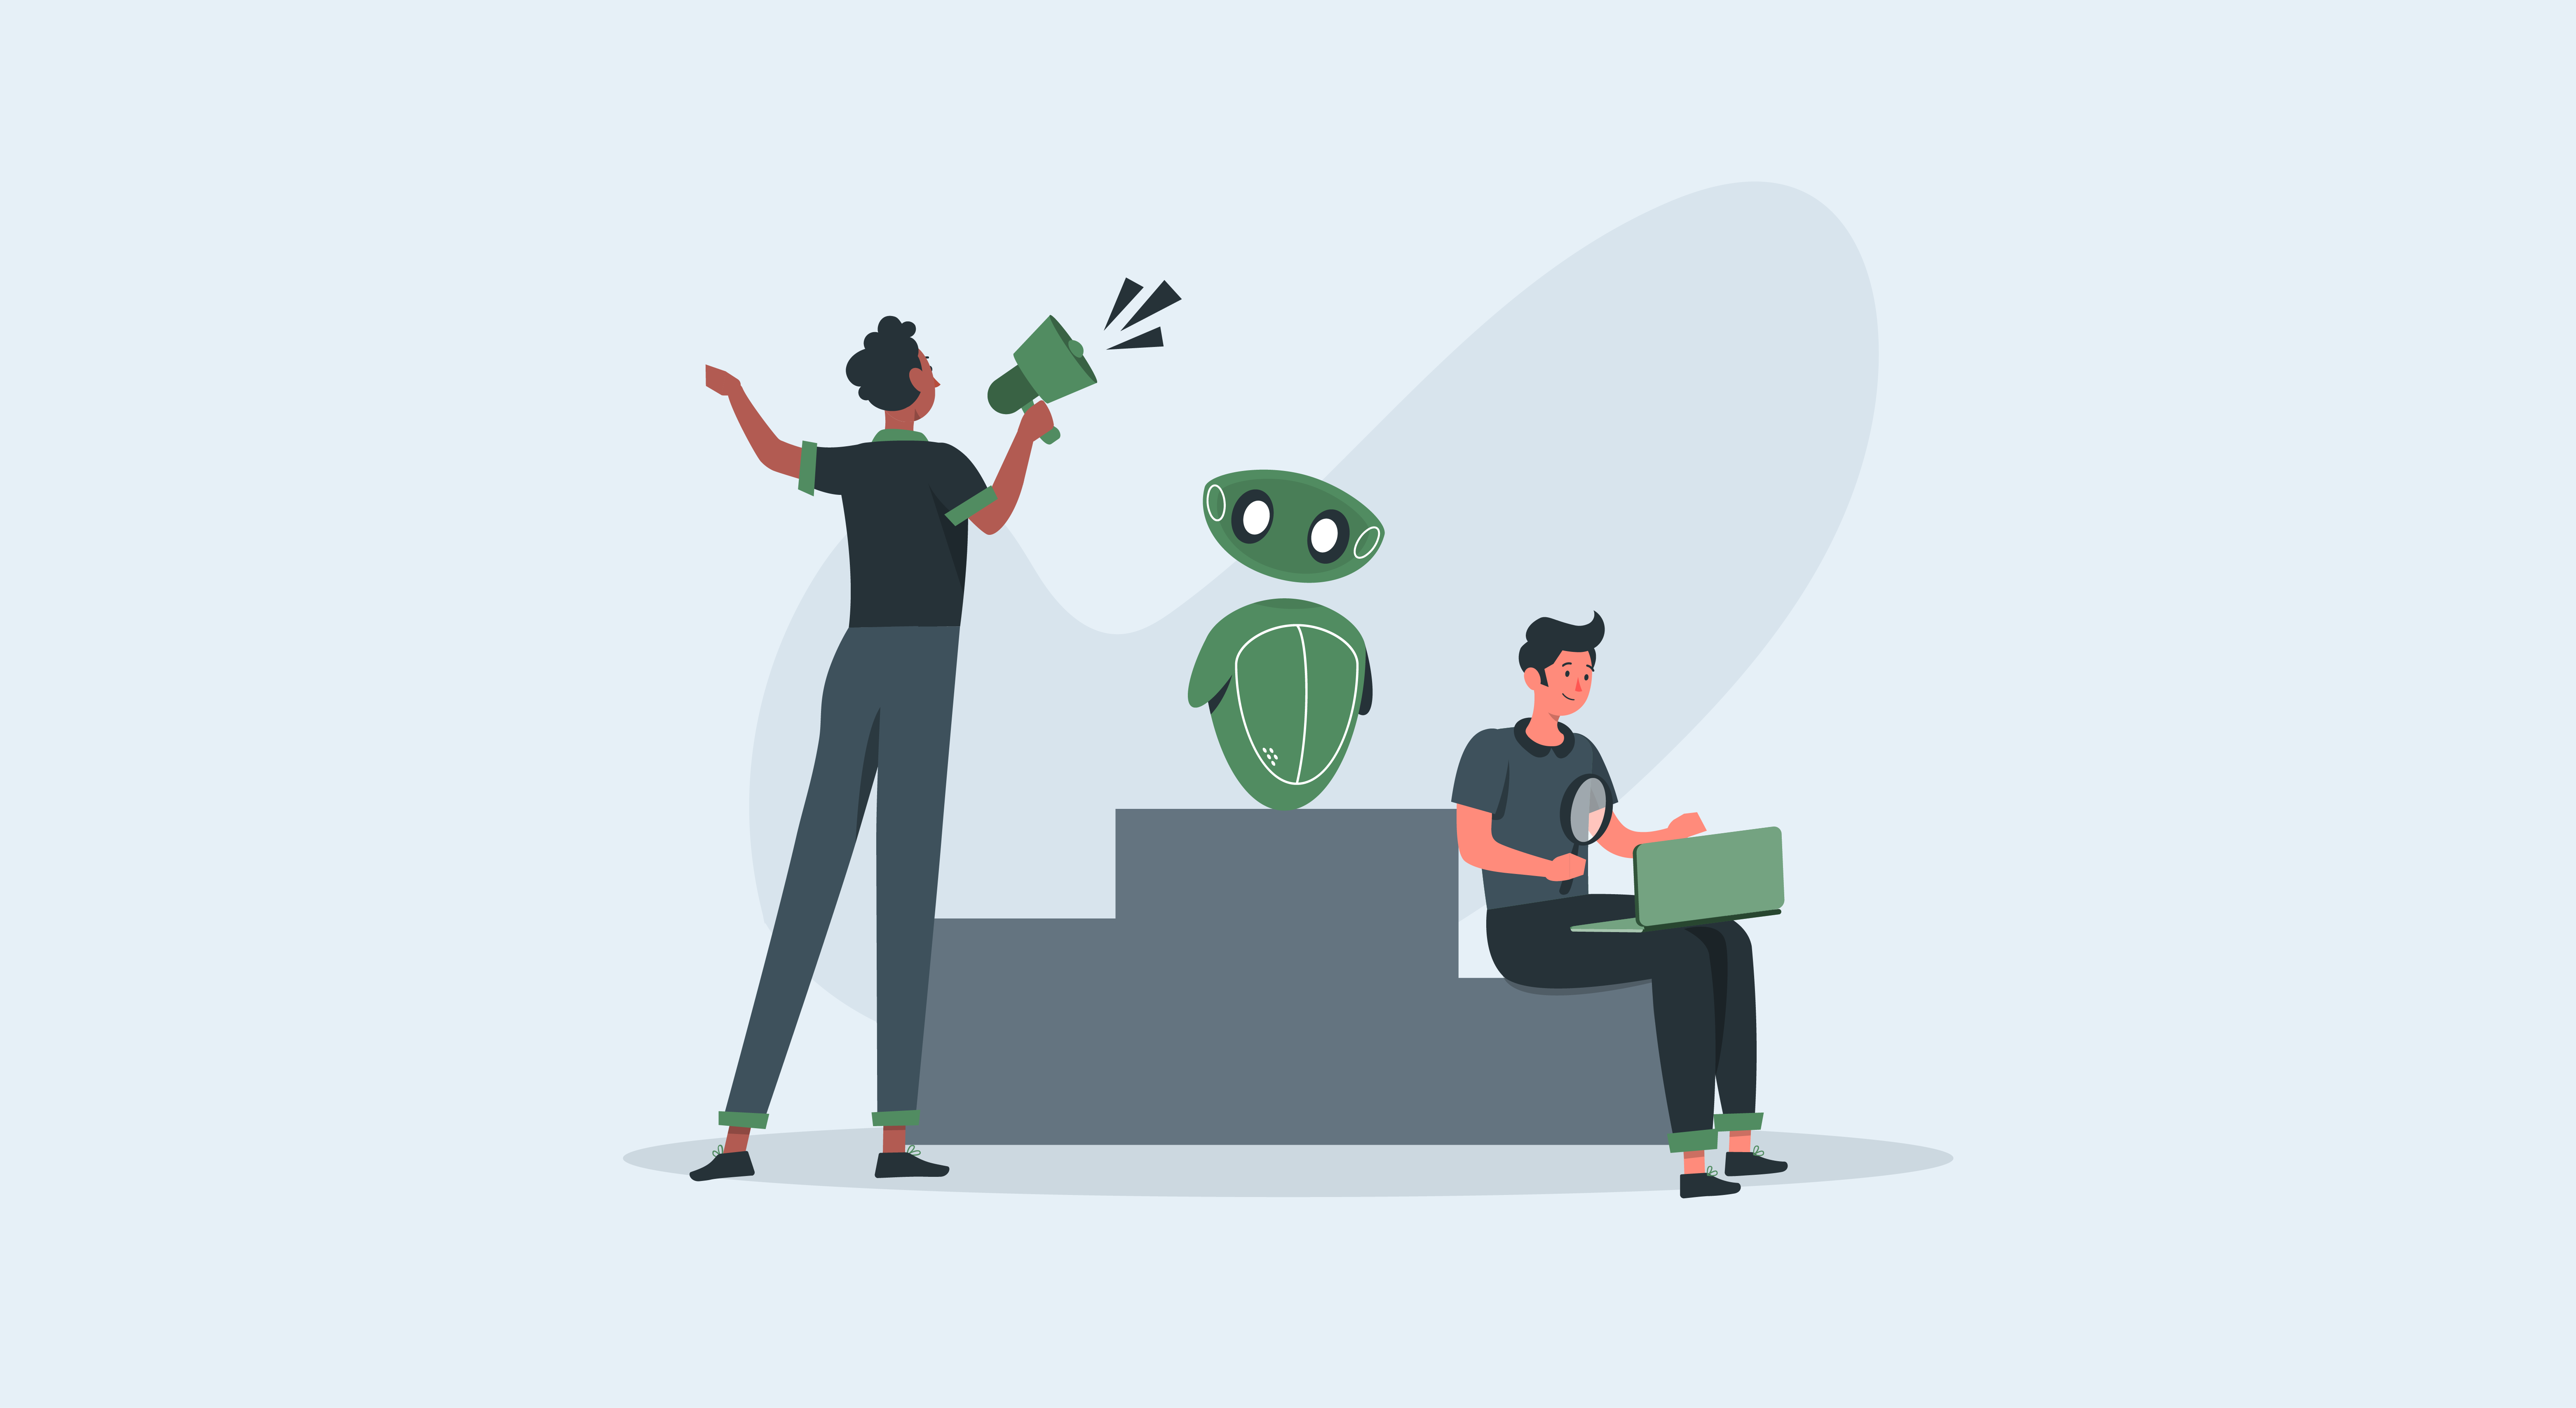 Conversational Marketing: 6 Game-changing Ways to Use Chatbots for Marketing